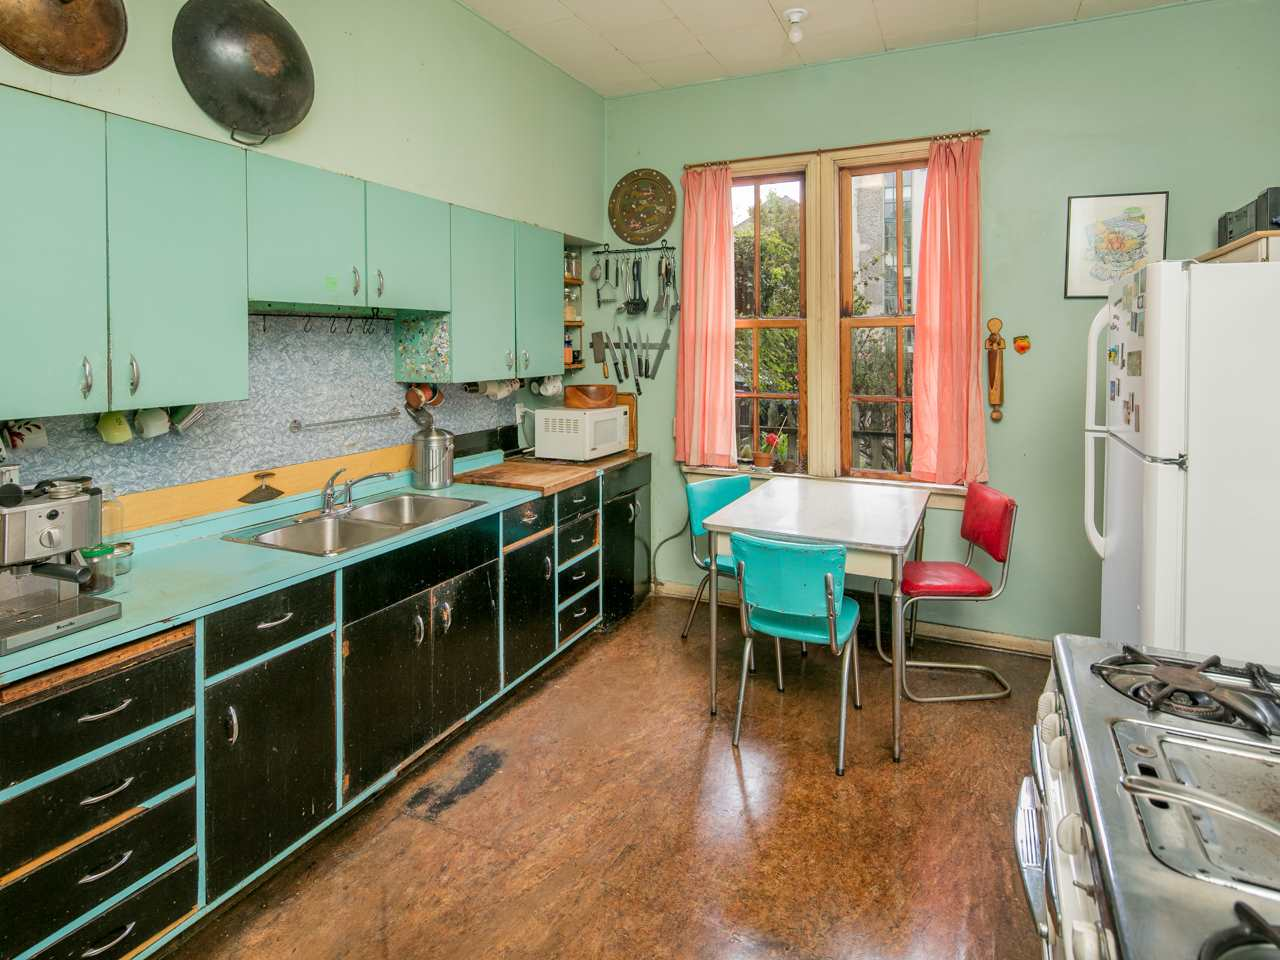 Photo 8: 450 HEATLEY Avenue in Vancouver: Mount Pleasant VE House for sale (Vancouver East)  : MLS® # R2166102